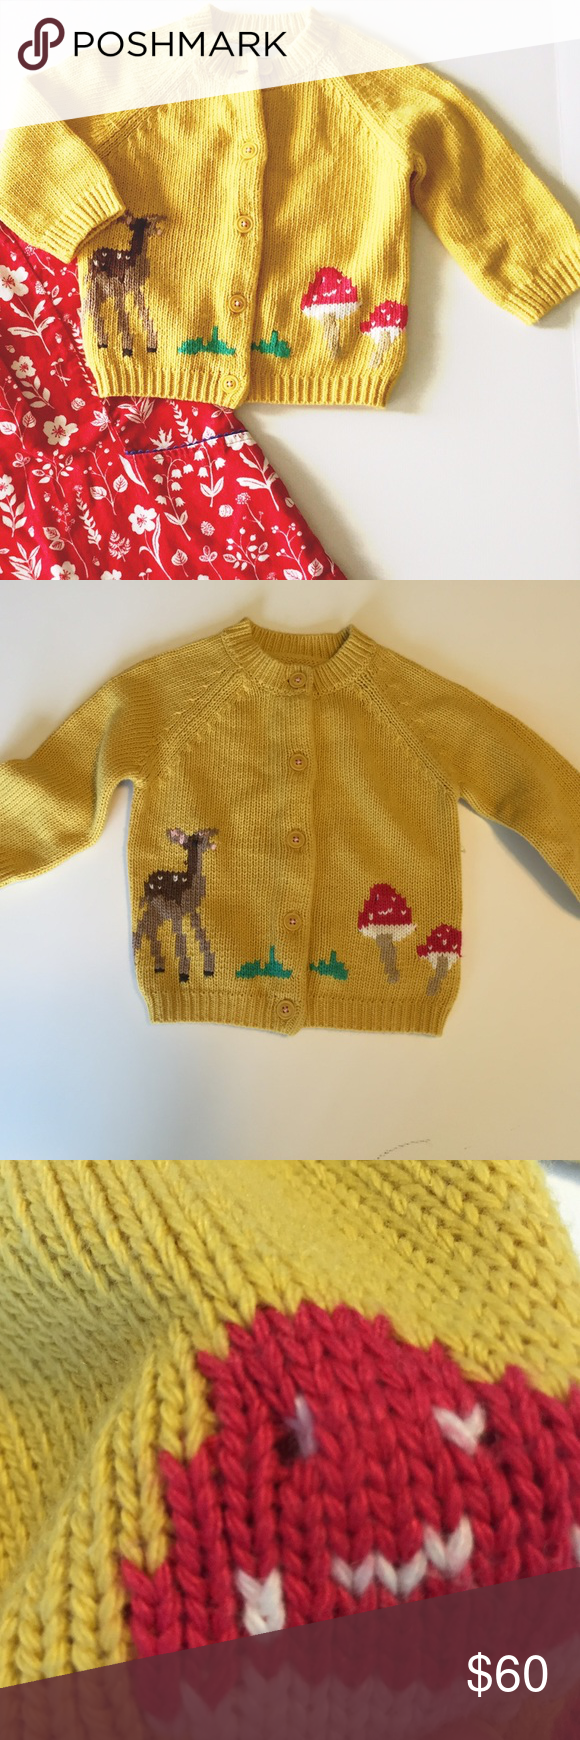 Baby Boden mustard sweater 6-12 months Sweet intarsia sweater from baby Boden. Matching dress listed separately. There is a pull on sleeve Mini Boden Jackets & Coats